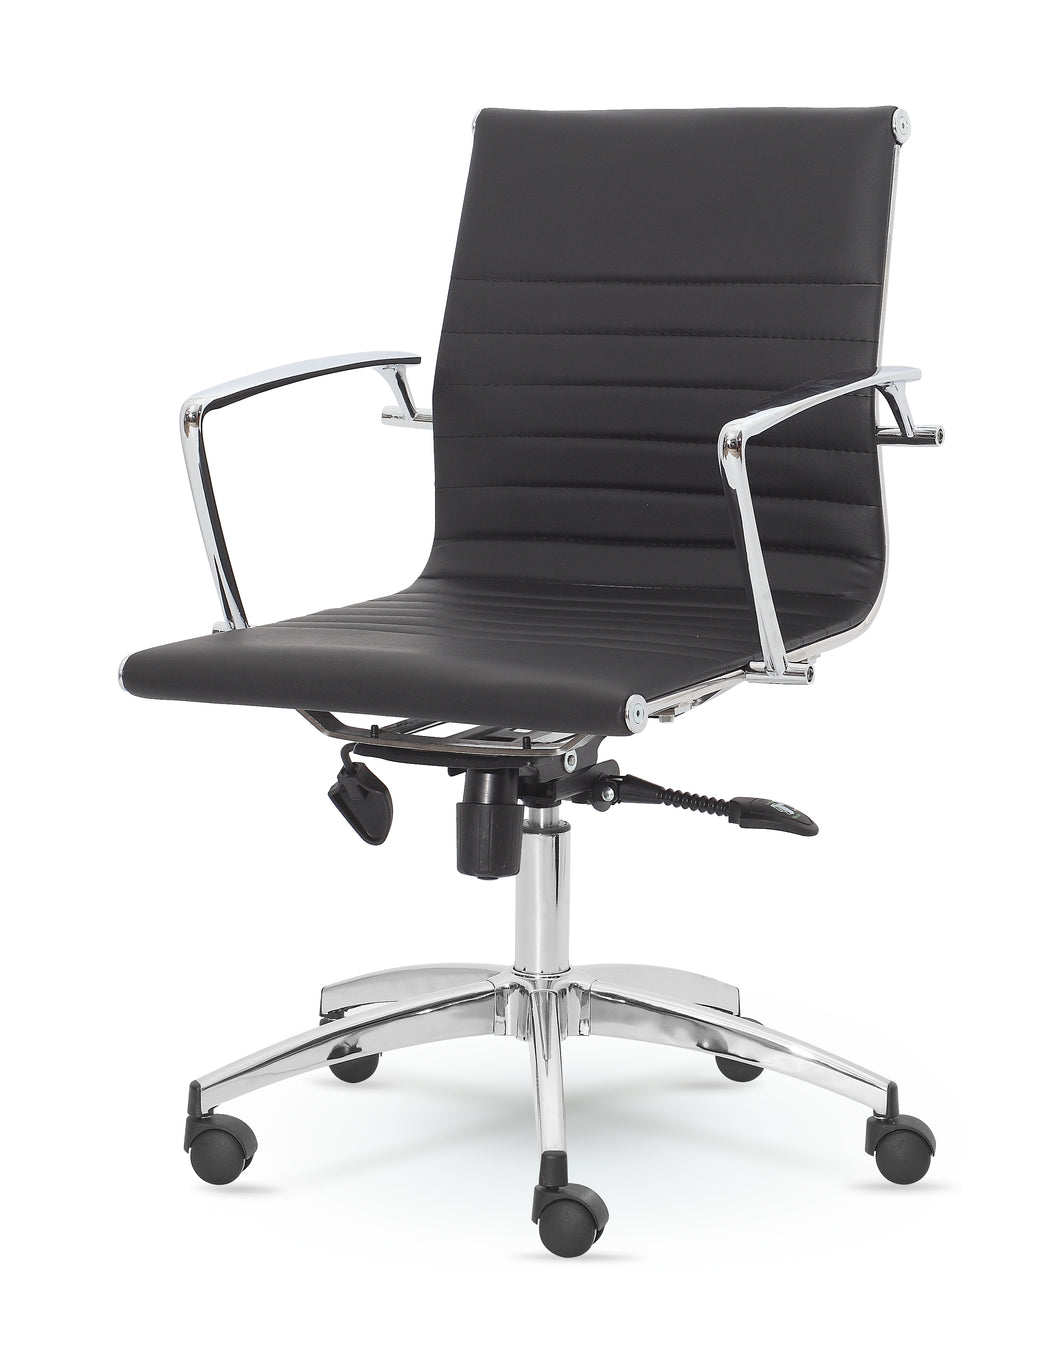 Winport Mid-Back Executive Leather Swivel Office, Home Desk, Task Chair DY-9712KM